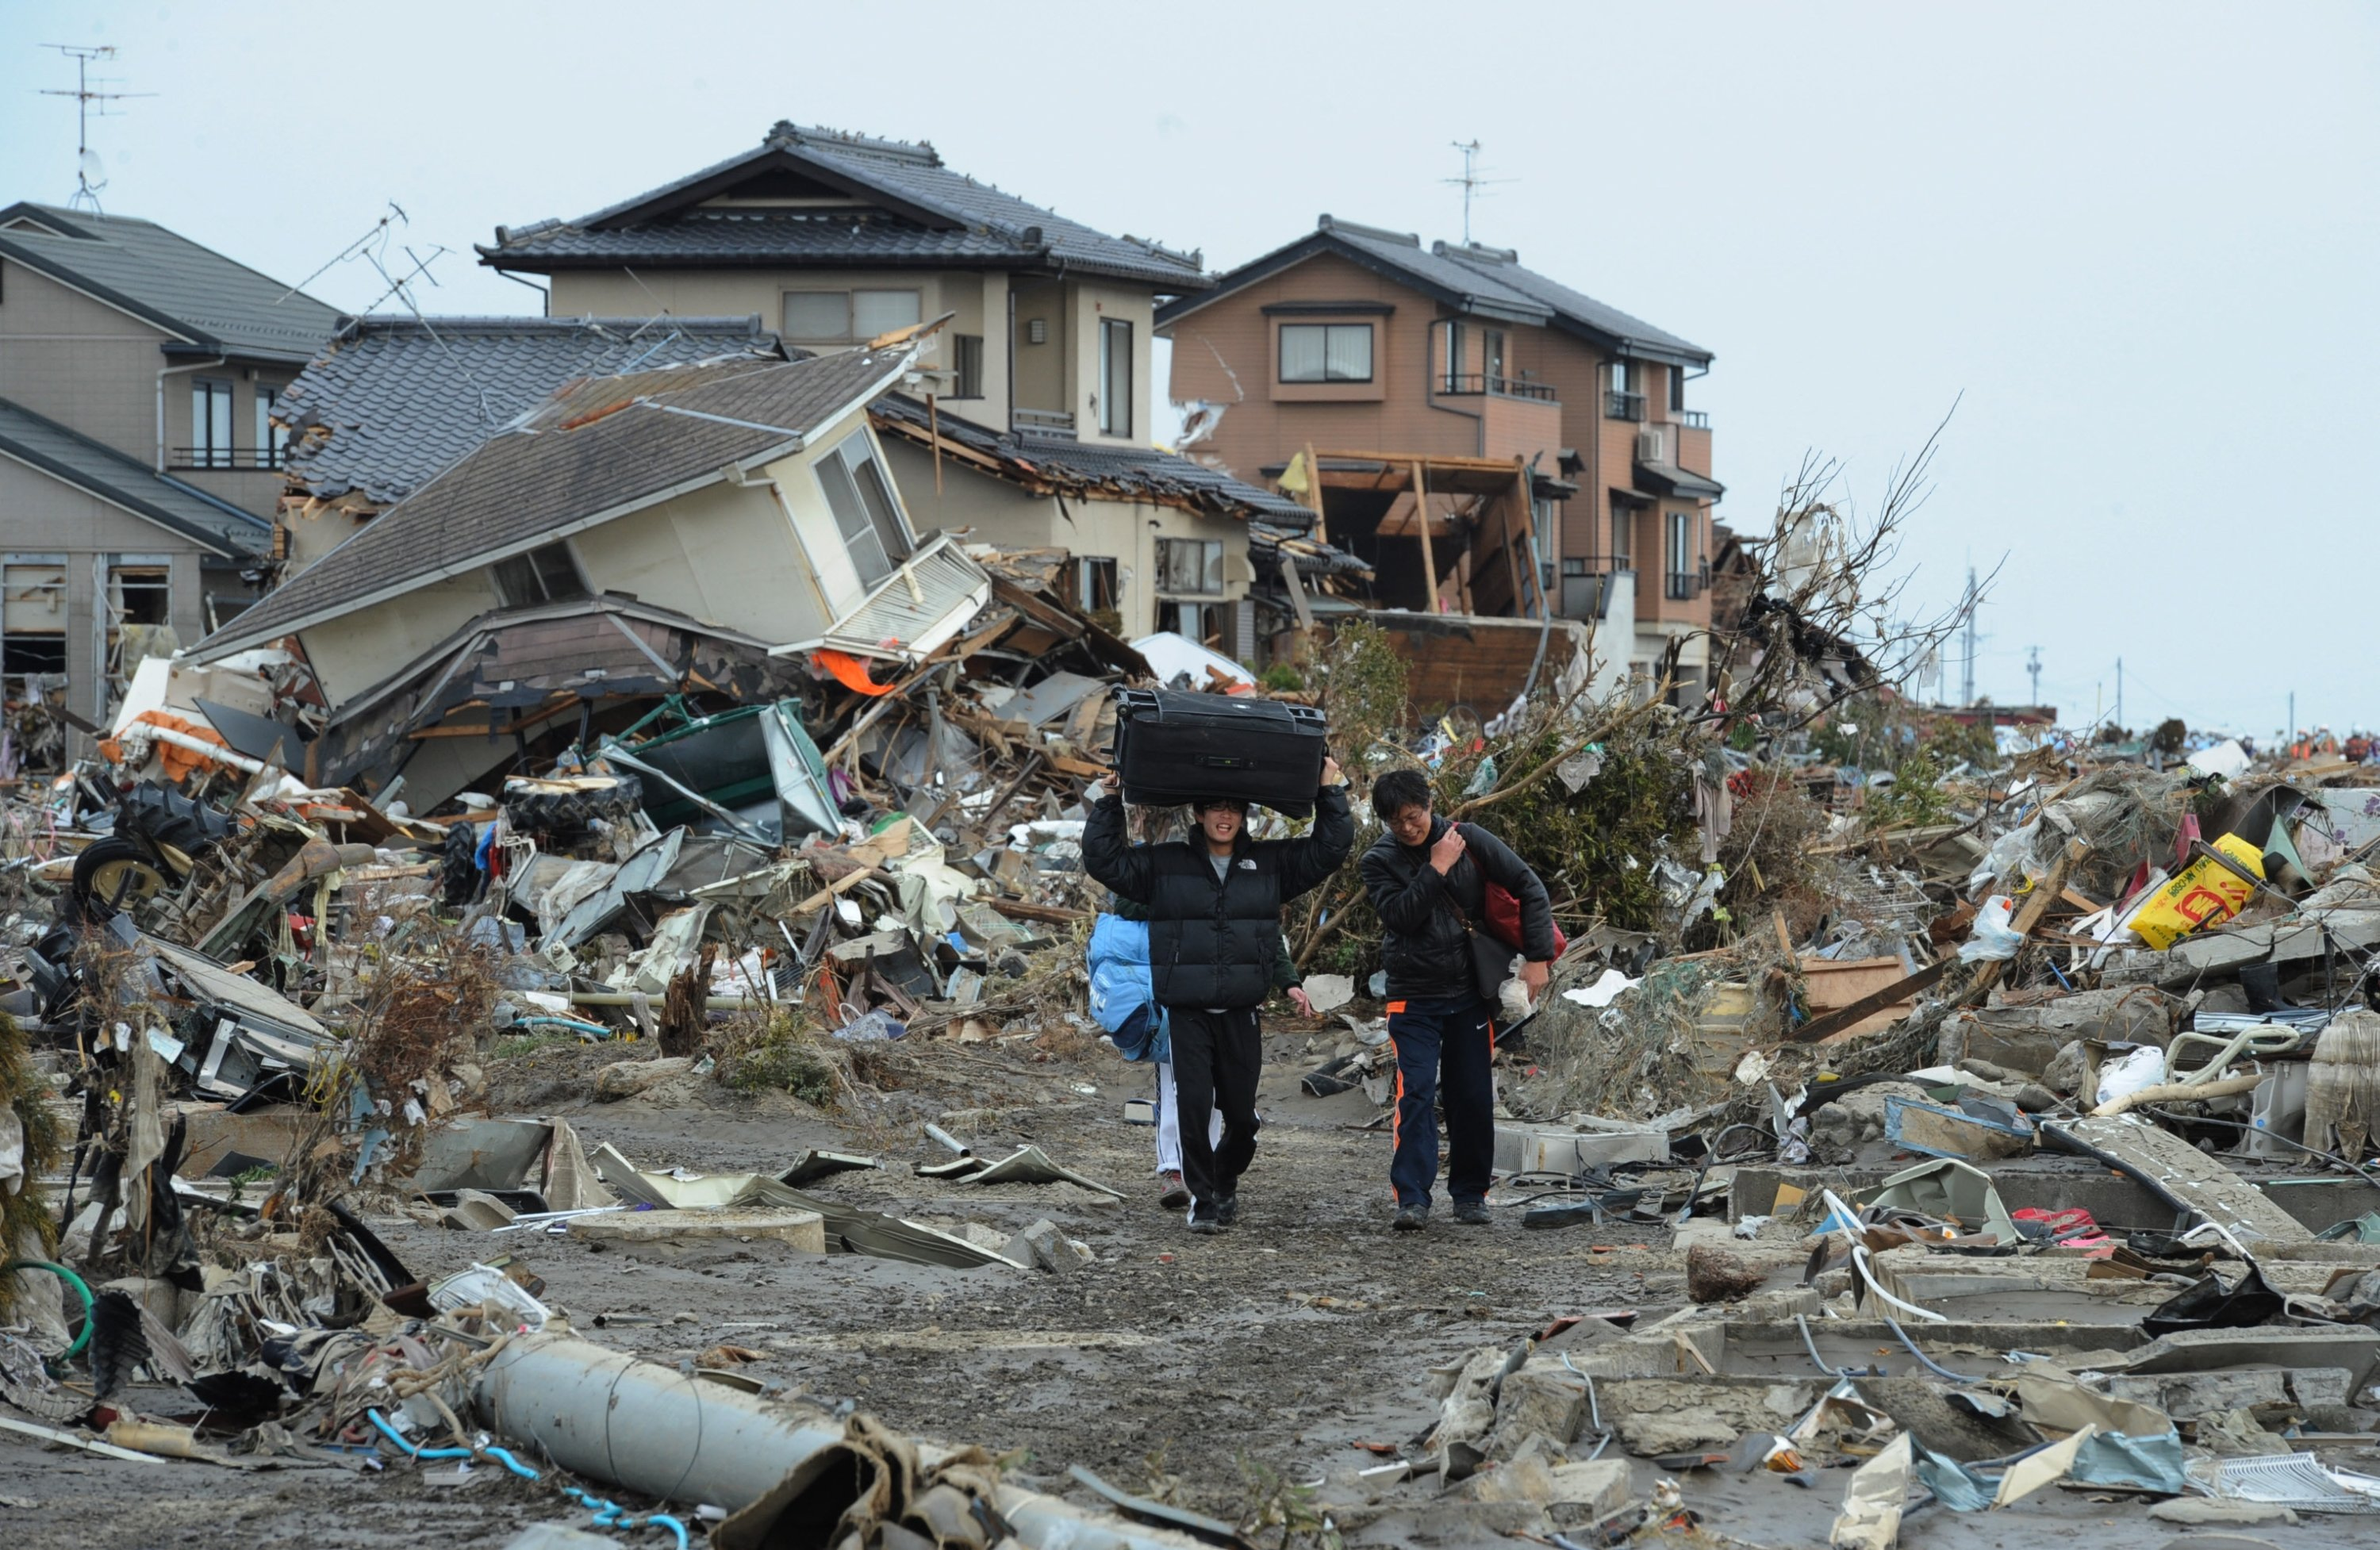 Residents carry belongings from tsunami devastated homes in Natori, Miyagi prefecture, in the wake of the 9-magnitude quake and tsunami which hit the region, Japan, March 14, 2011. (AFP)